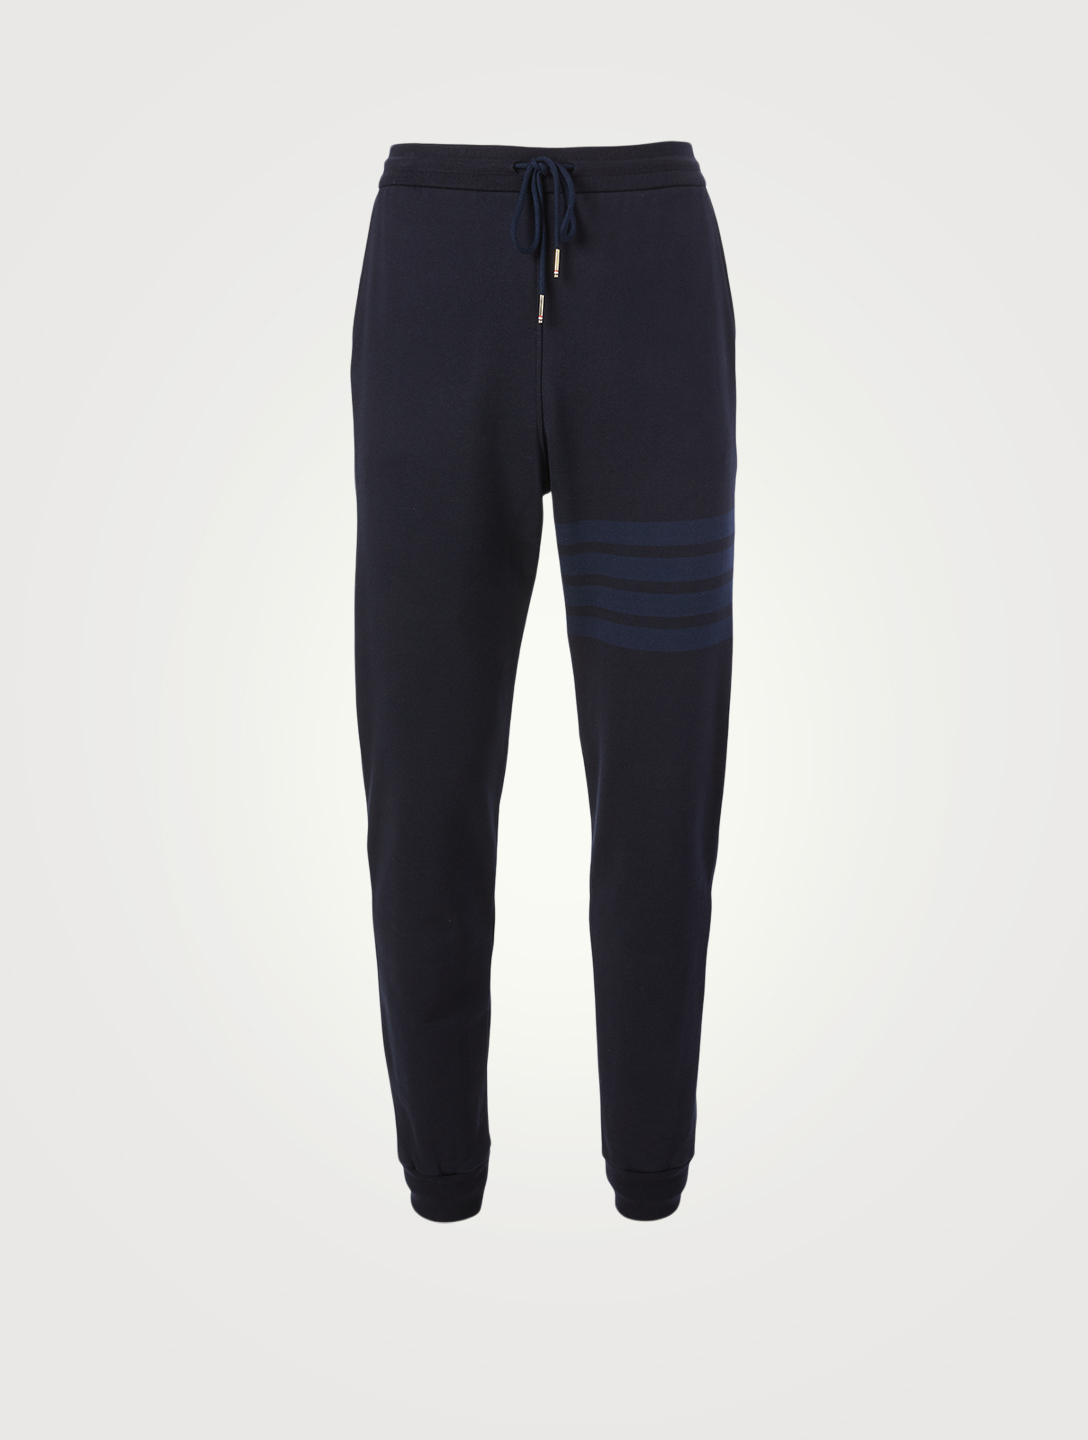 THOM BROWNE Cotton Loopback Sweatpants With Four-Bar Men's Blue